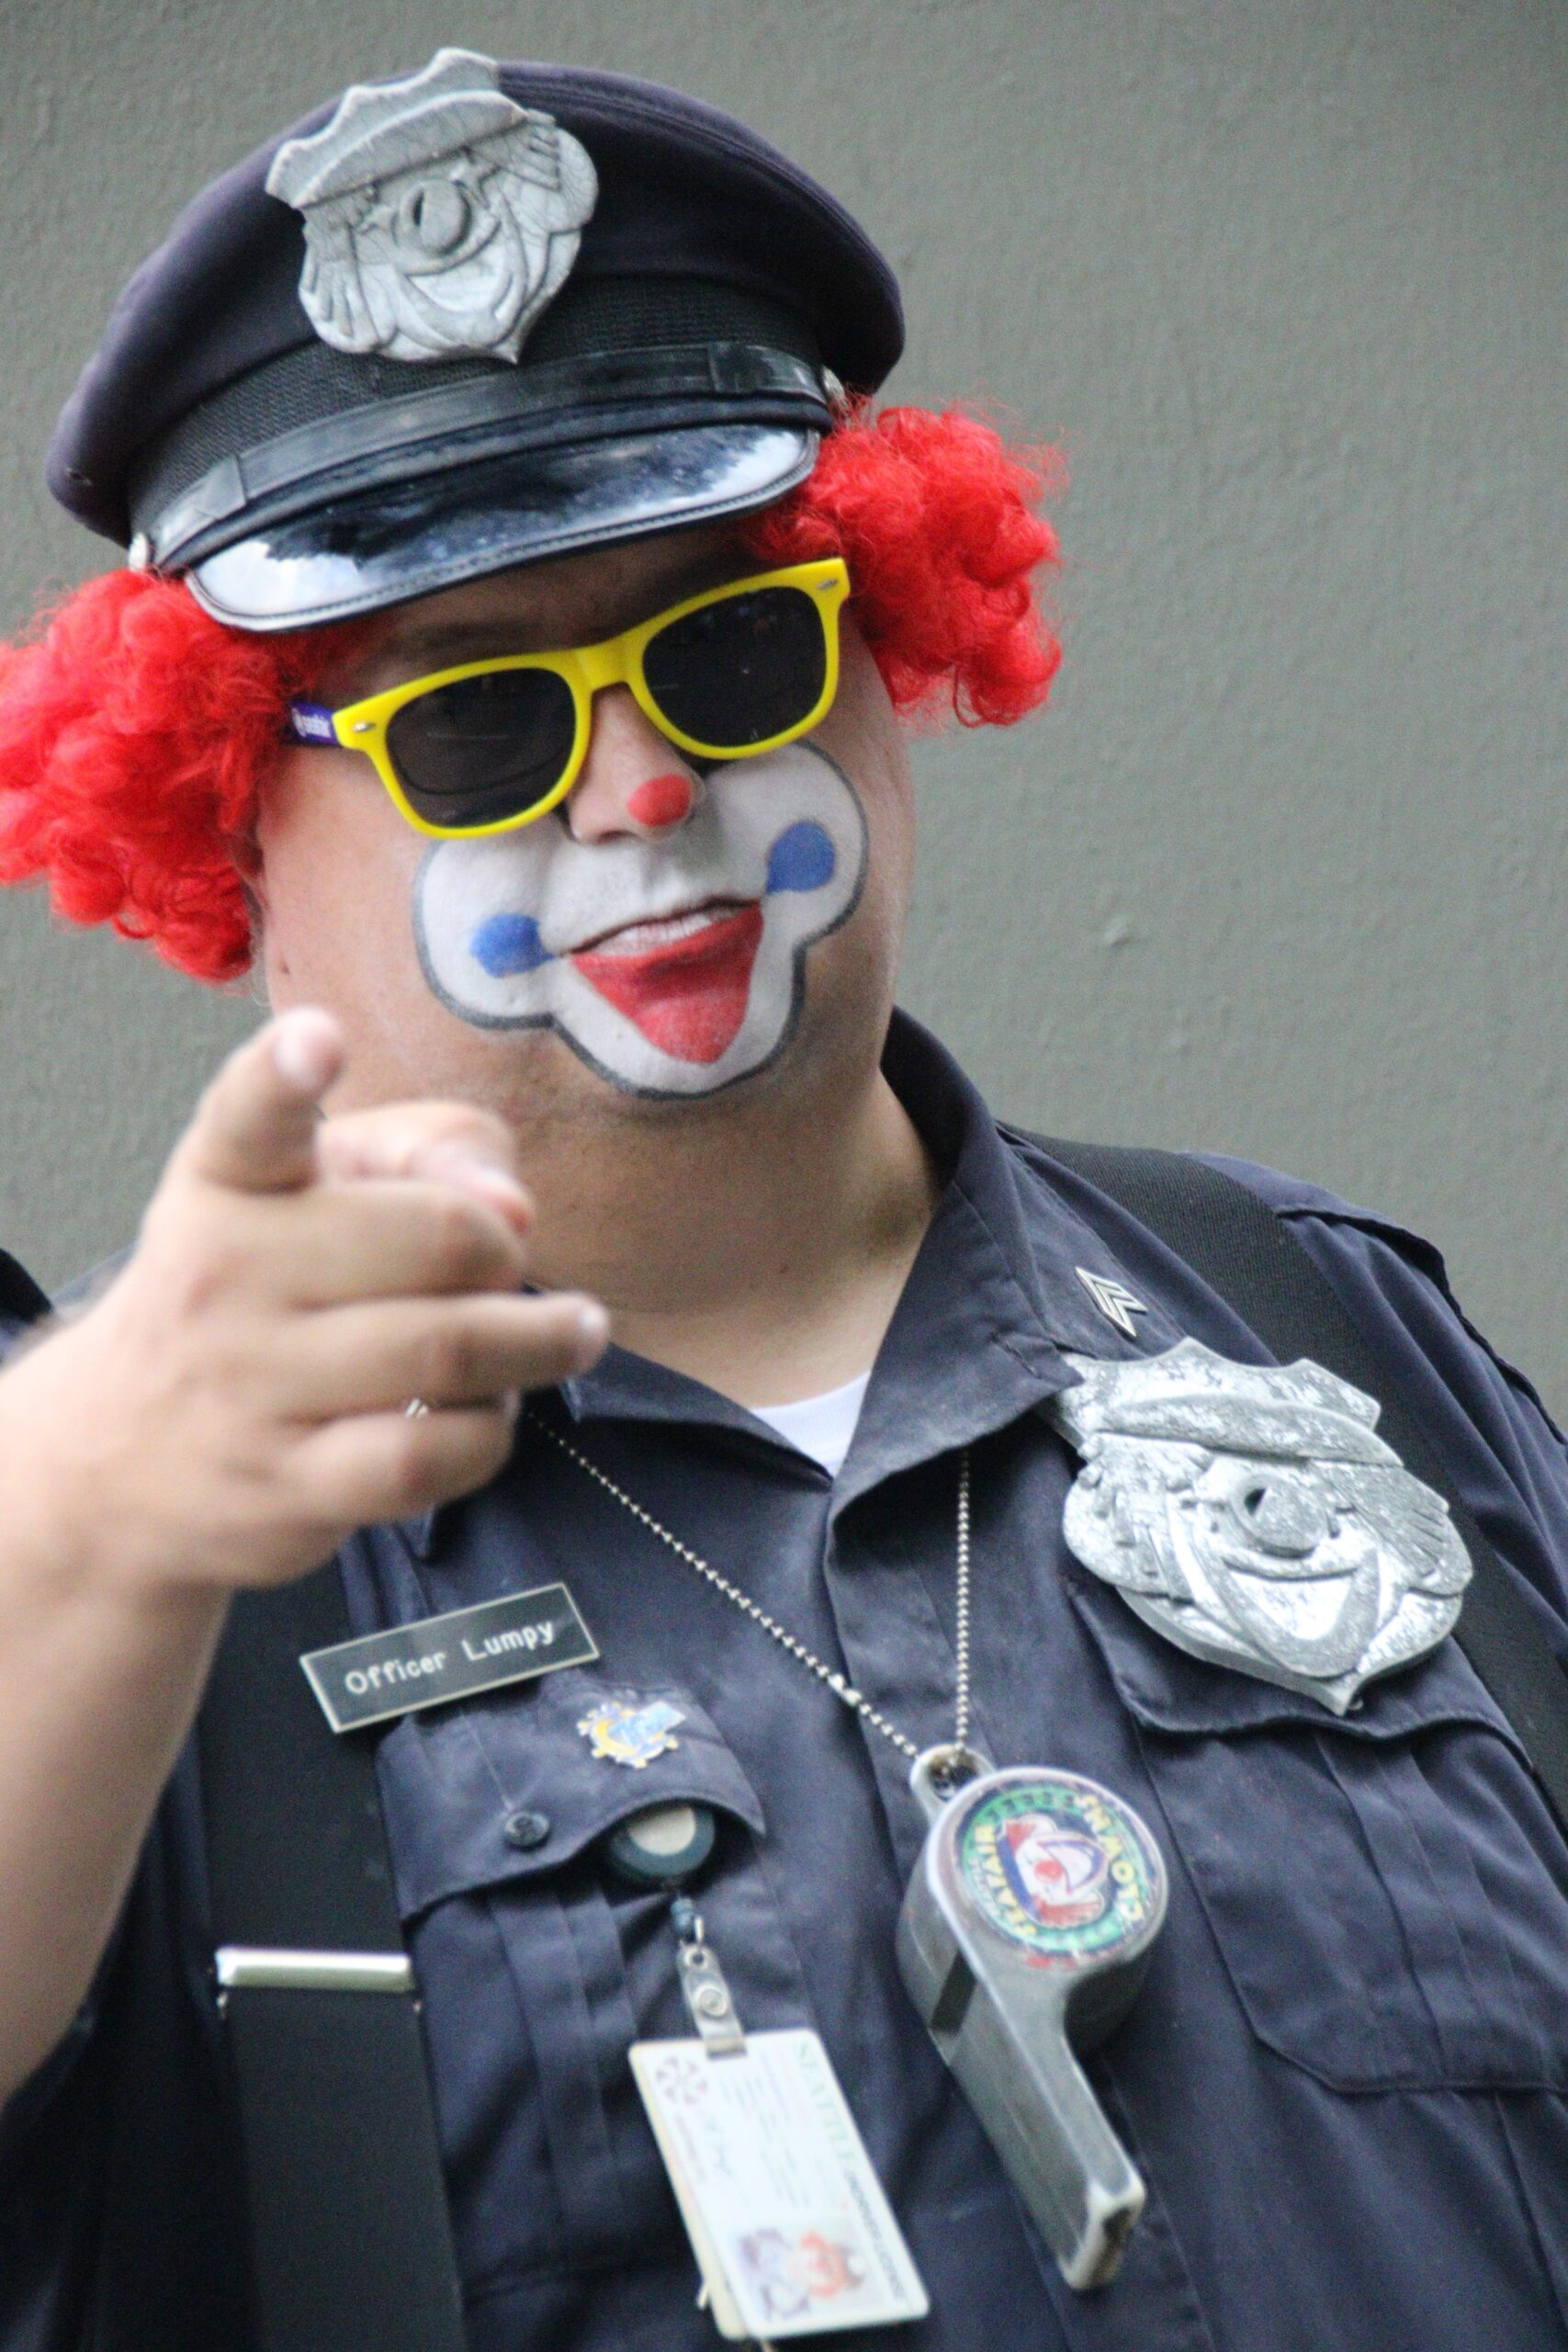 Clown face cop points at church comedy drama